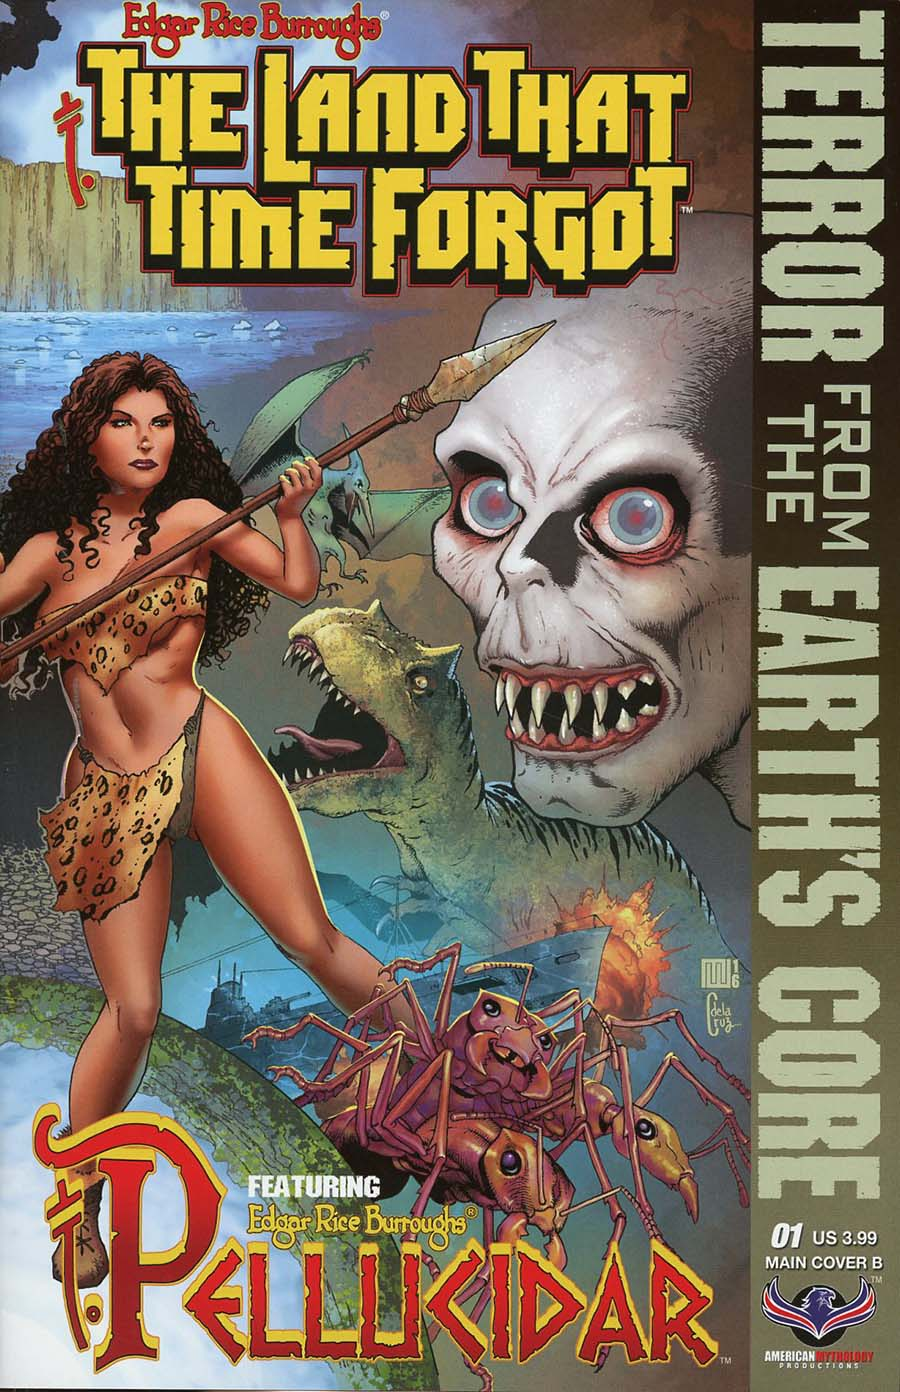 Edgar Rice Burroughs Land That Time Forgot Terror From The Earths Core #1 Cover B Variant Mike Wolfer Connecting Cover